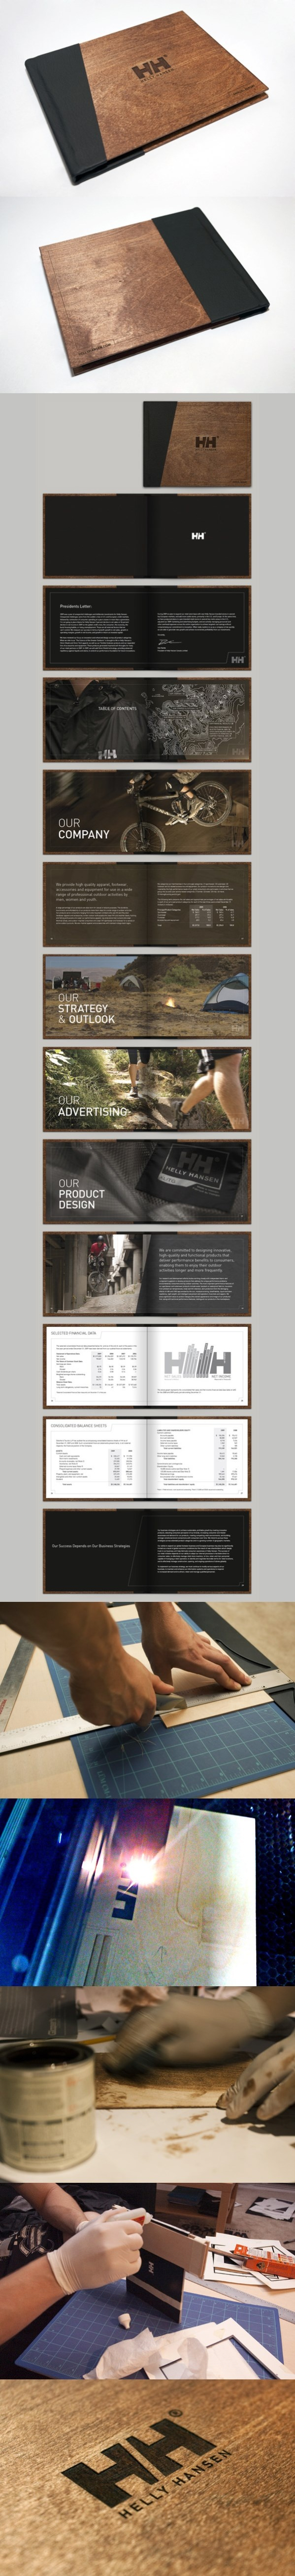 Best Internship Report Images On   Editorial Design